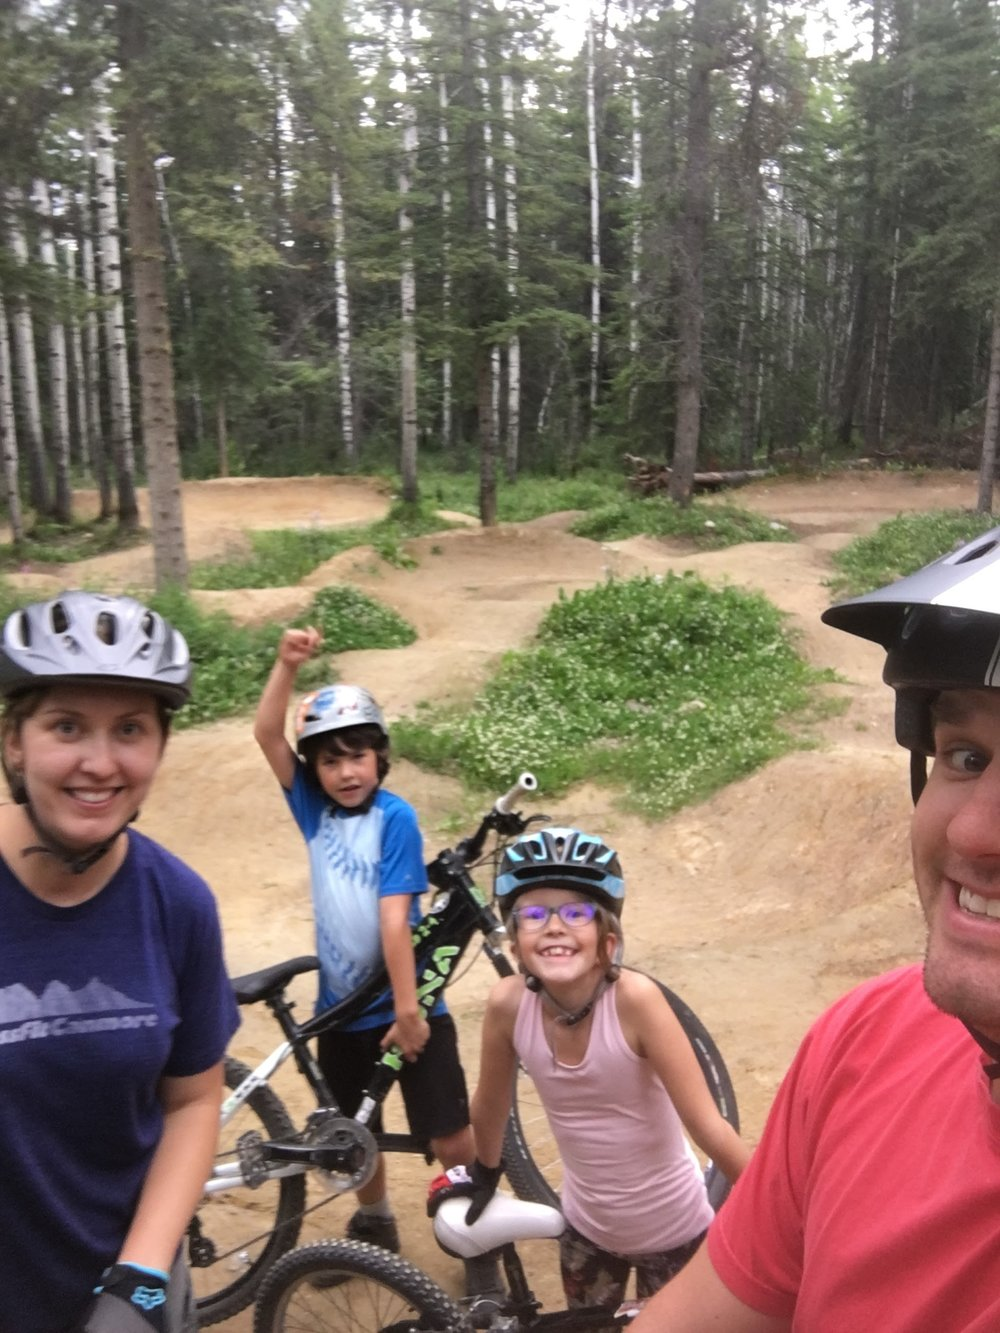 Family time at the bike park